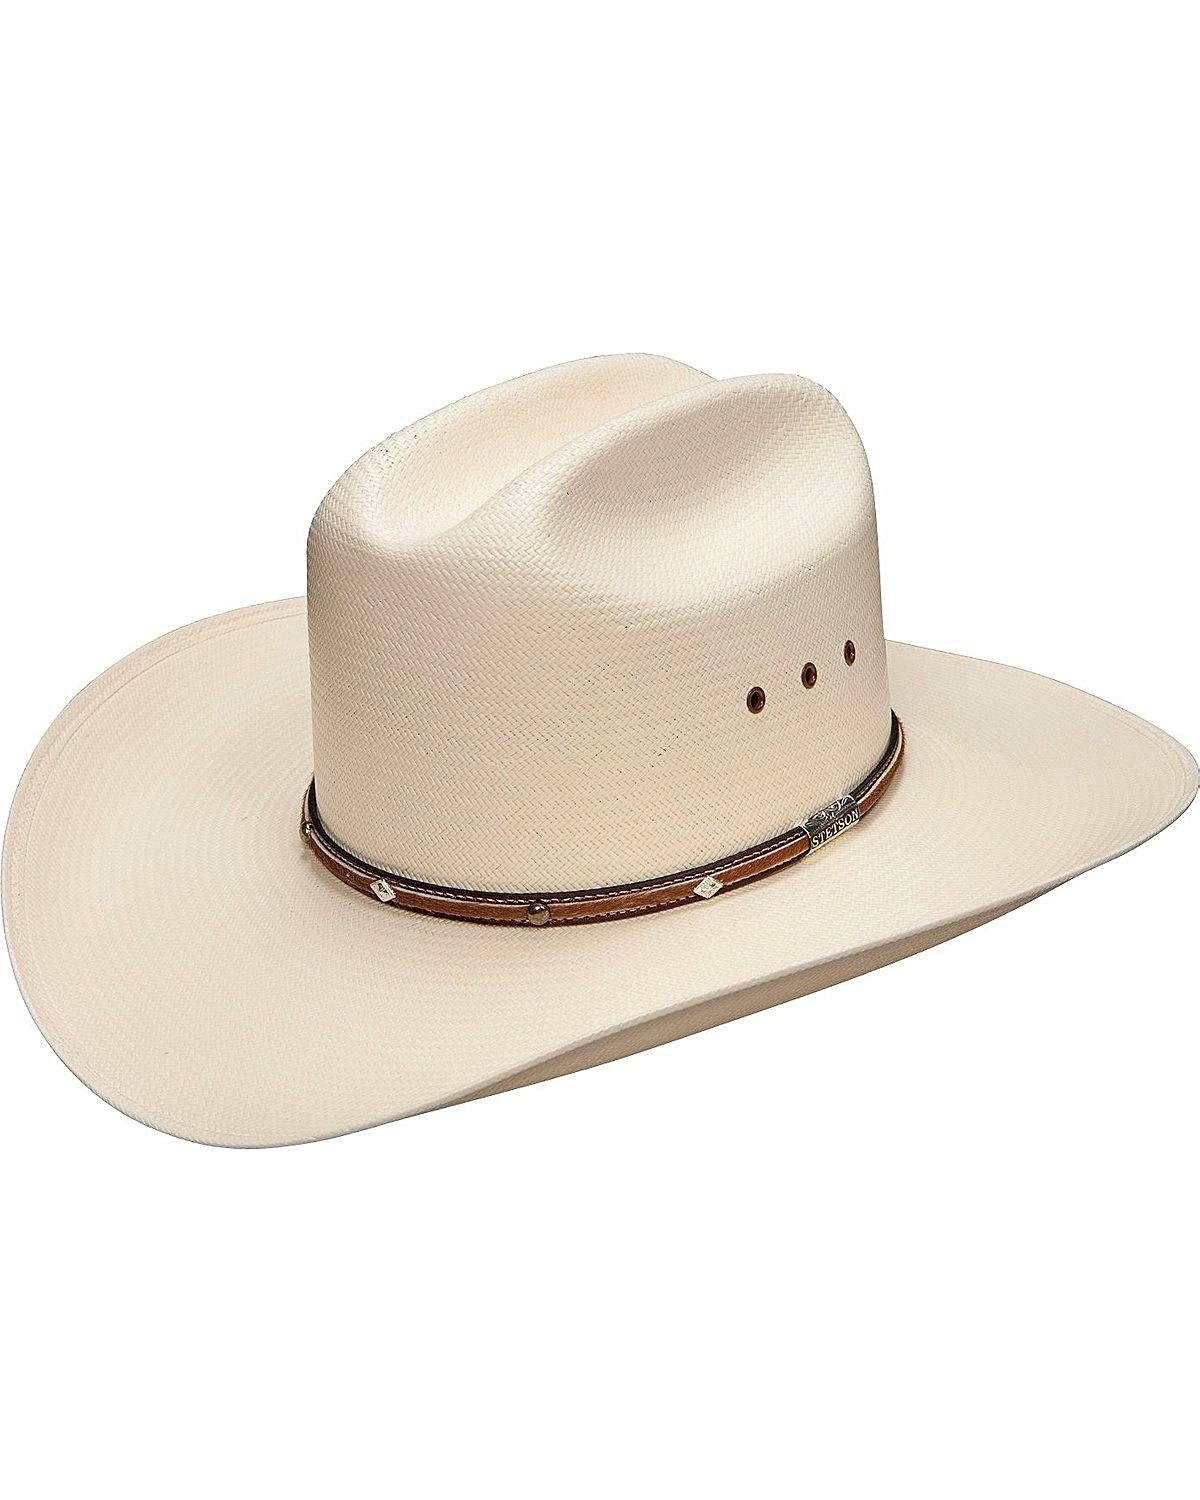 f24a6925a Cheap Stetson Cowboy Hat Prices, find Stetson Cowboy Hat Prices ...